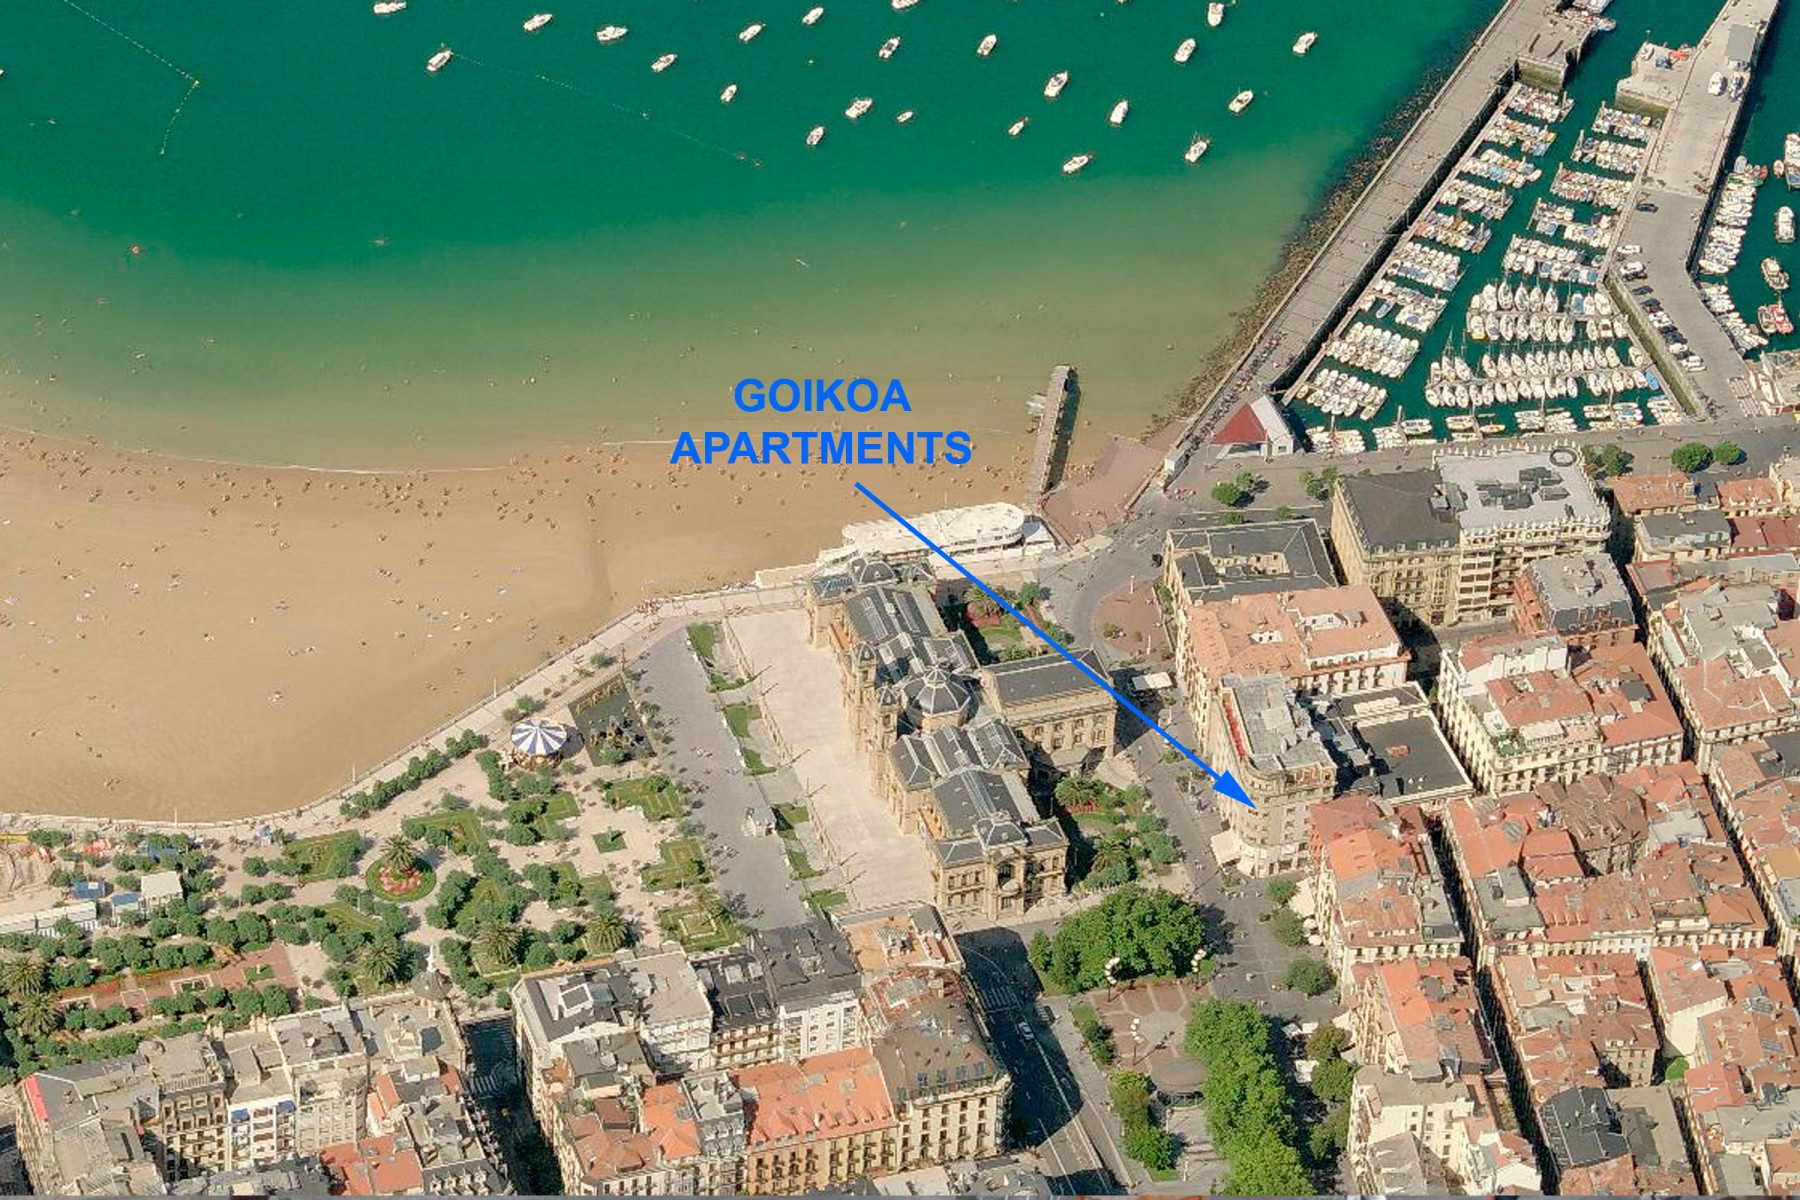 Apartments in San Sebastián - Goikoa 6 Nautic